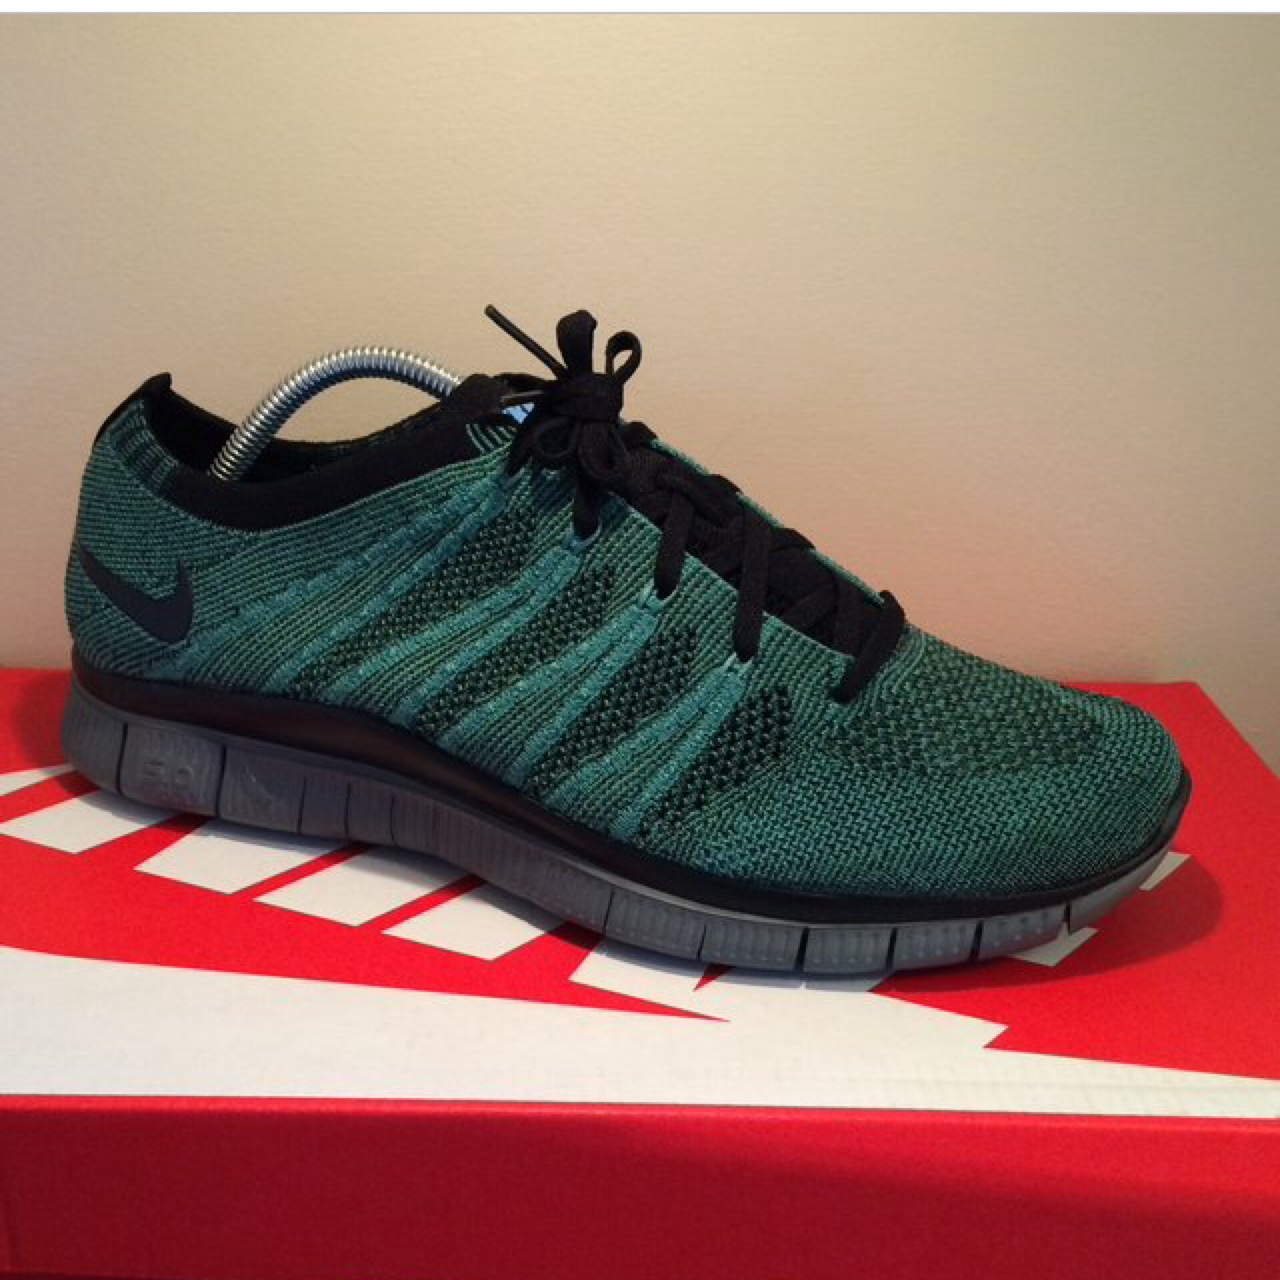 Nike free run flyknit 0.1 0.2 0.3 0.4 0.5 in a green Depop